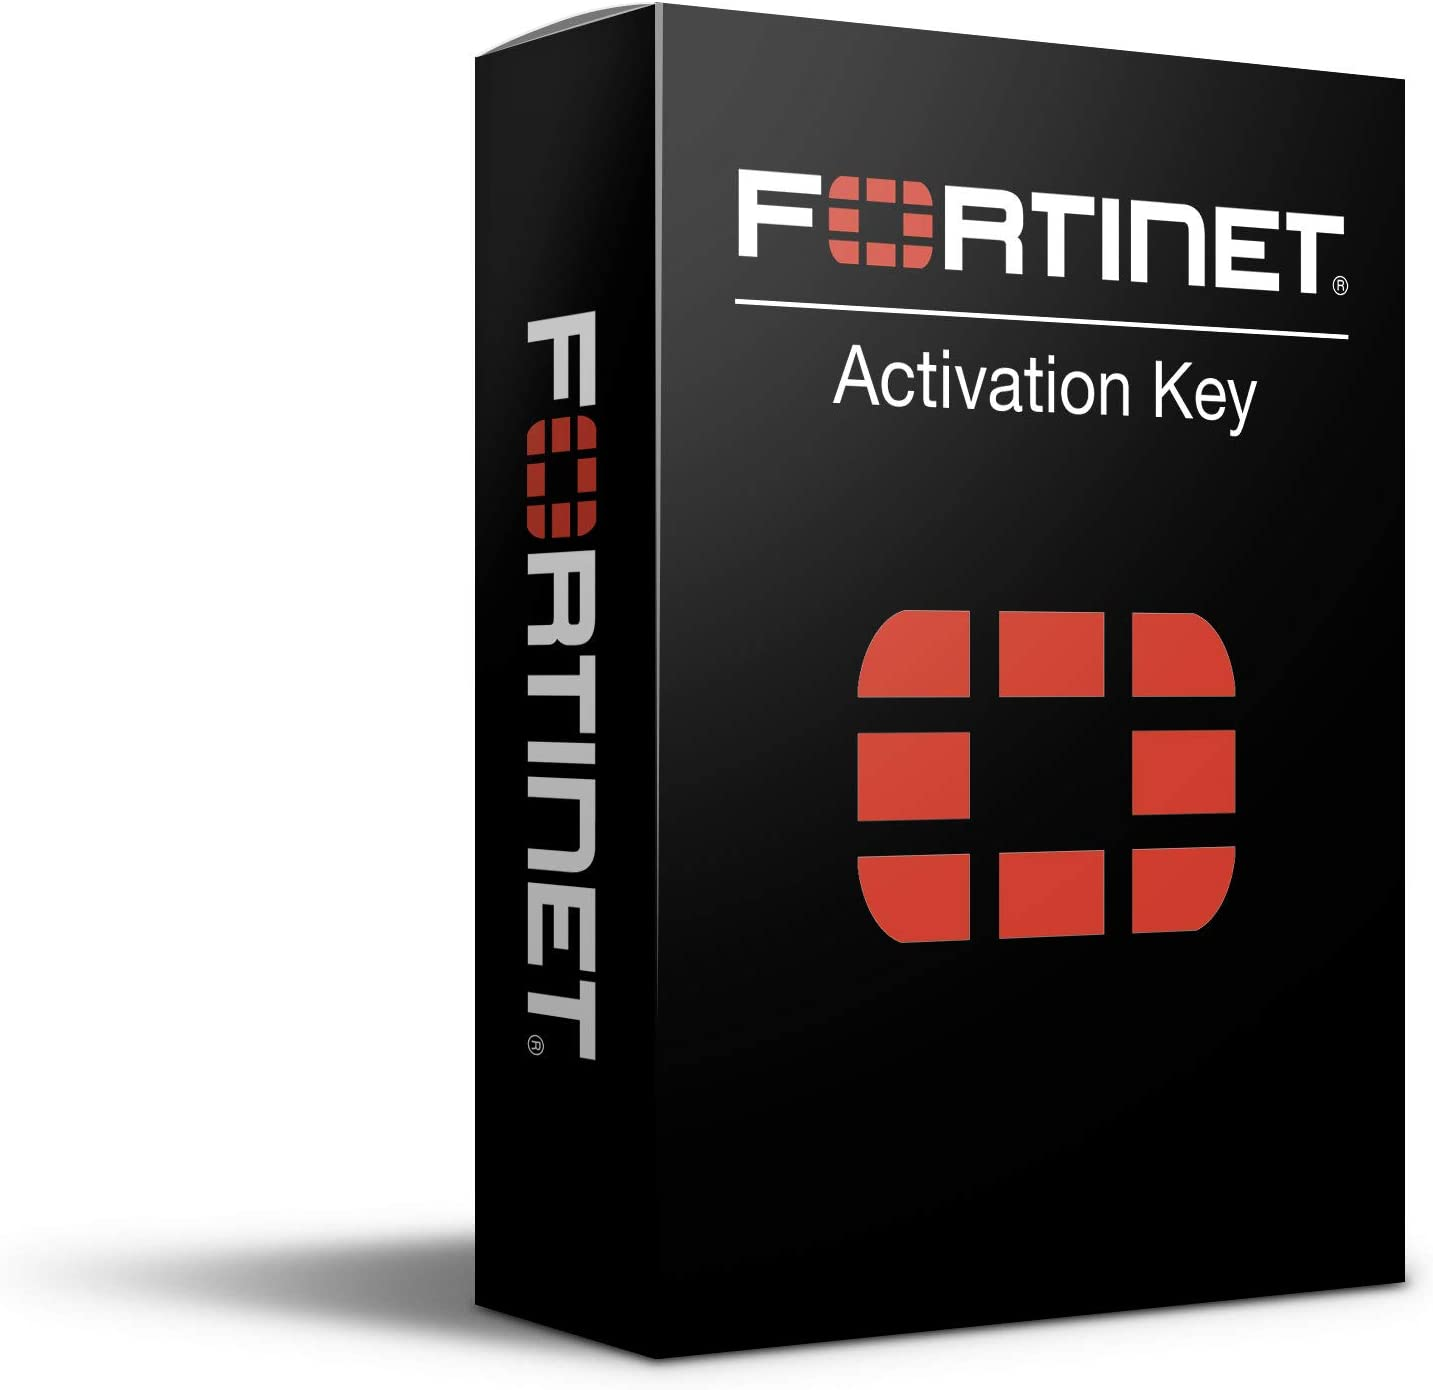 Fortinet FortiAuthenticator - VM License 3 Year 24x7 FortiCare Contract (1-500 Users) FC1-10-0ACVM-248-02-36